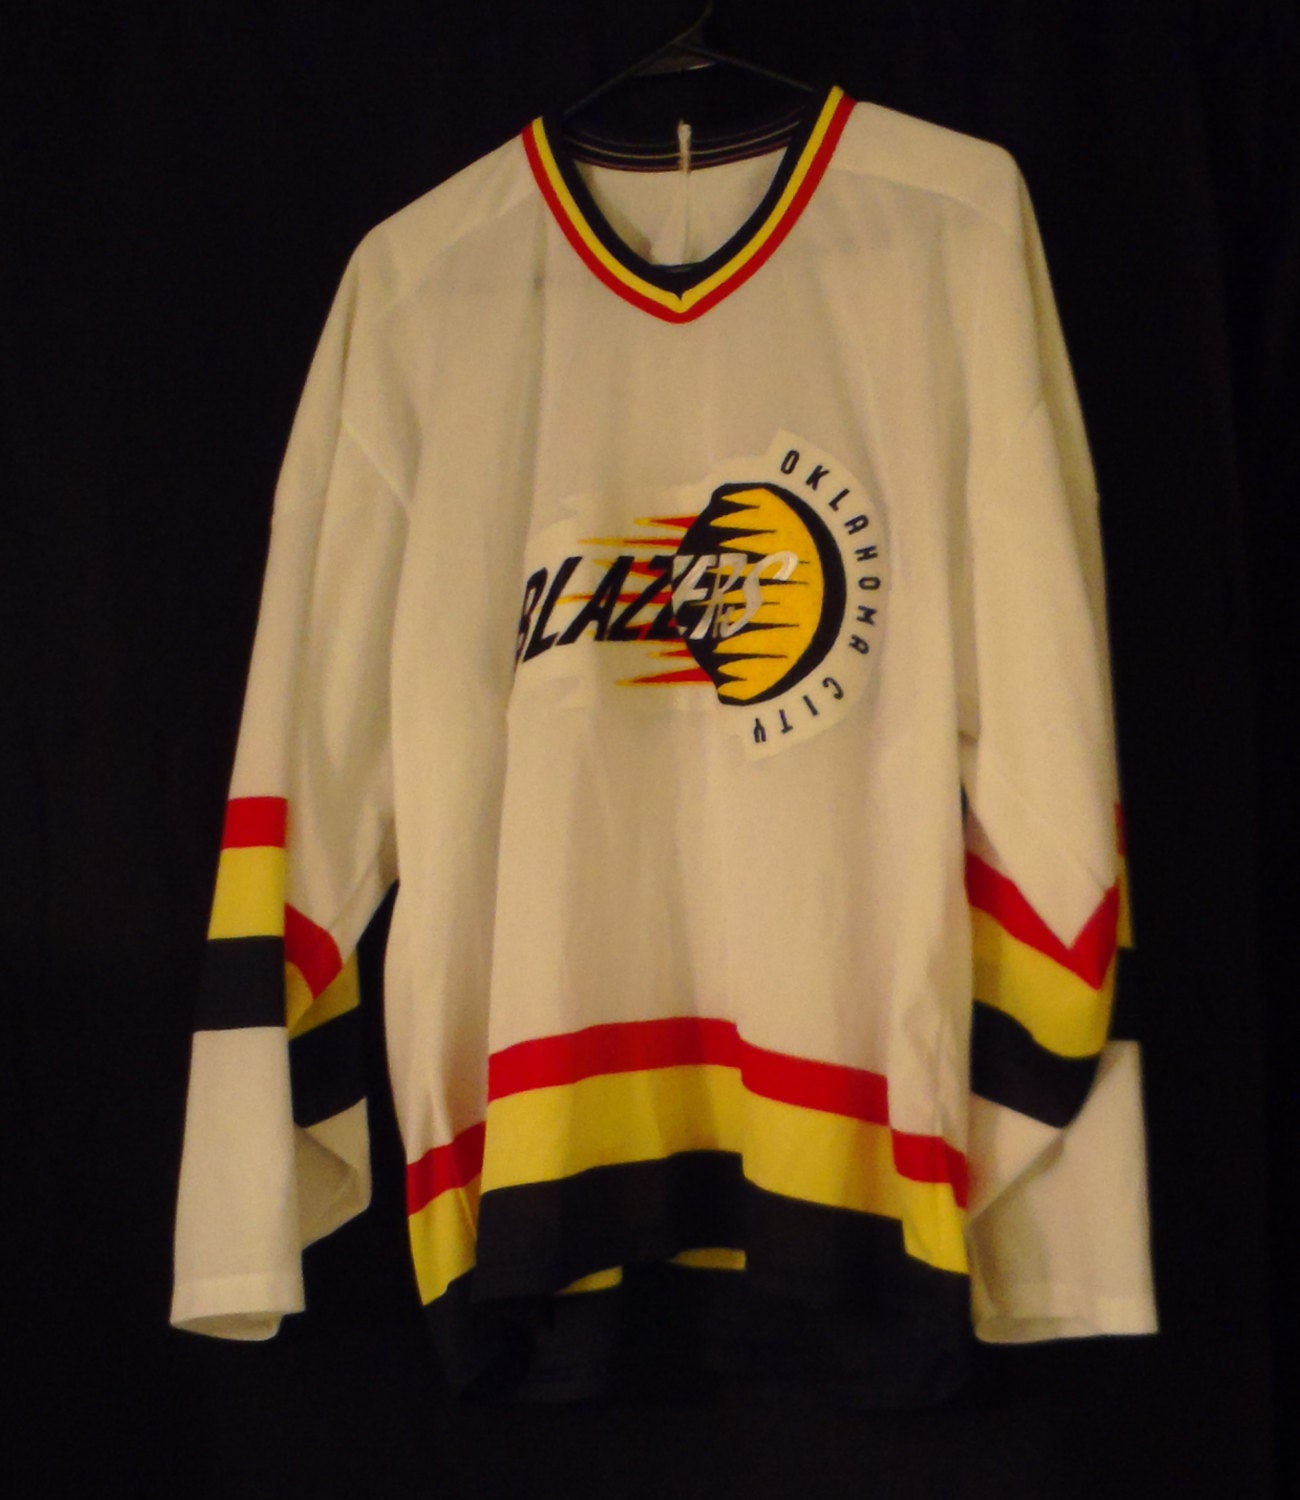 Oklahoma City Blazers Defunct CHL Hockey Team White Used L/XL